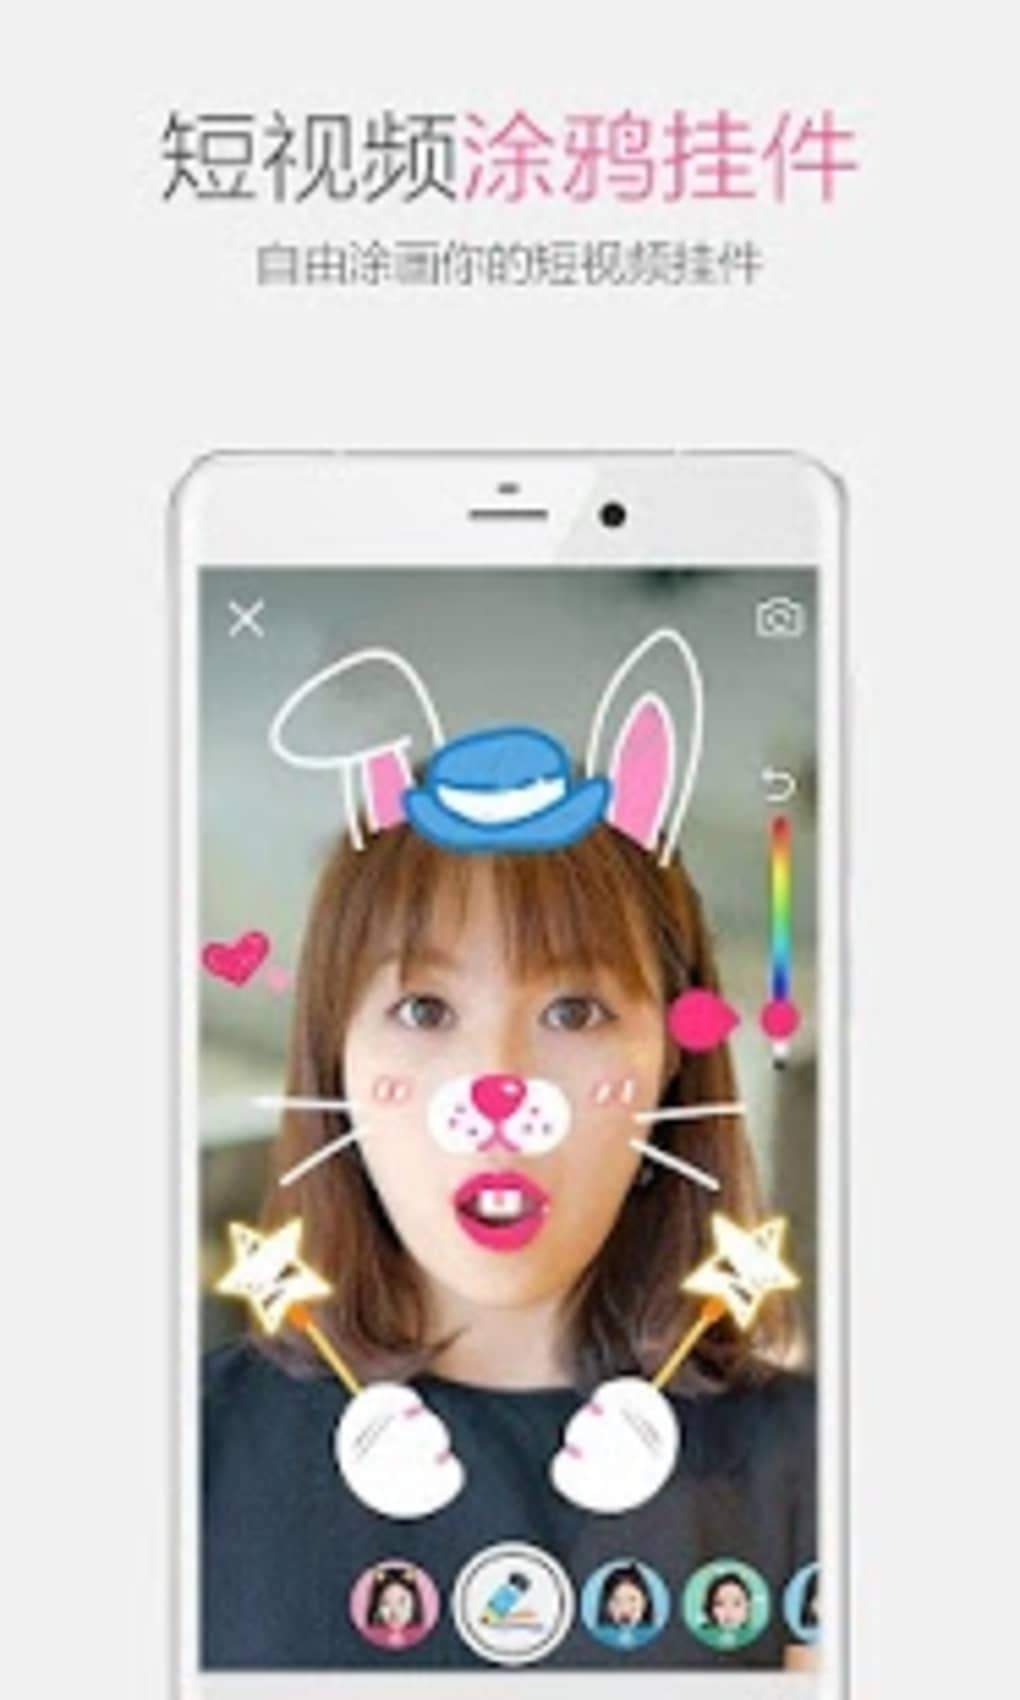 QQ for Android - Download